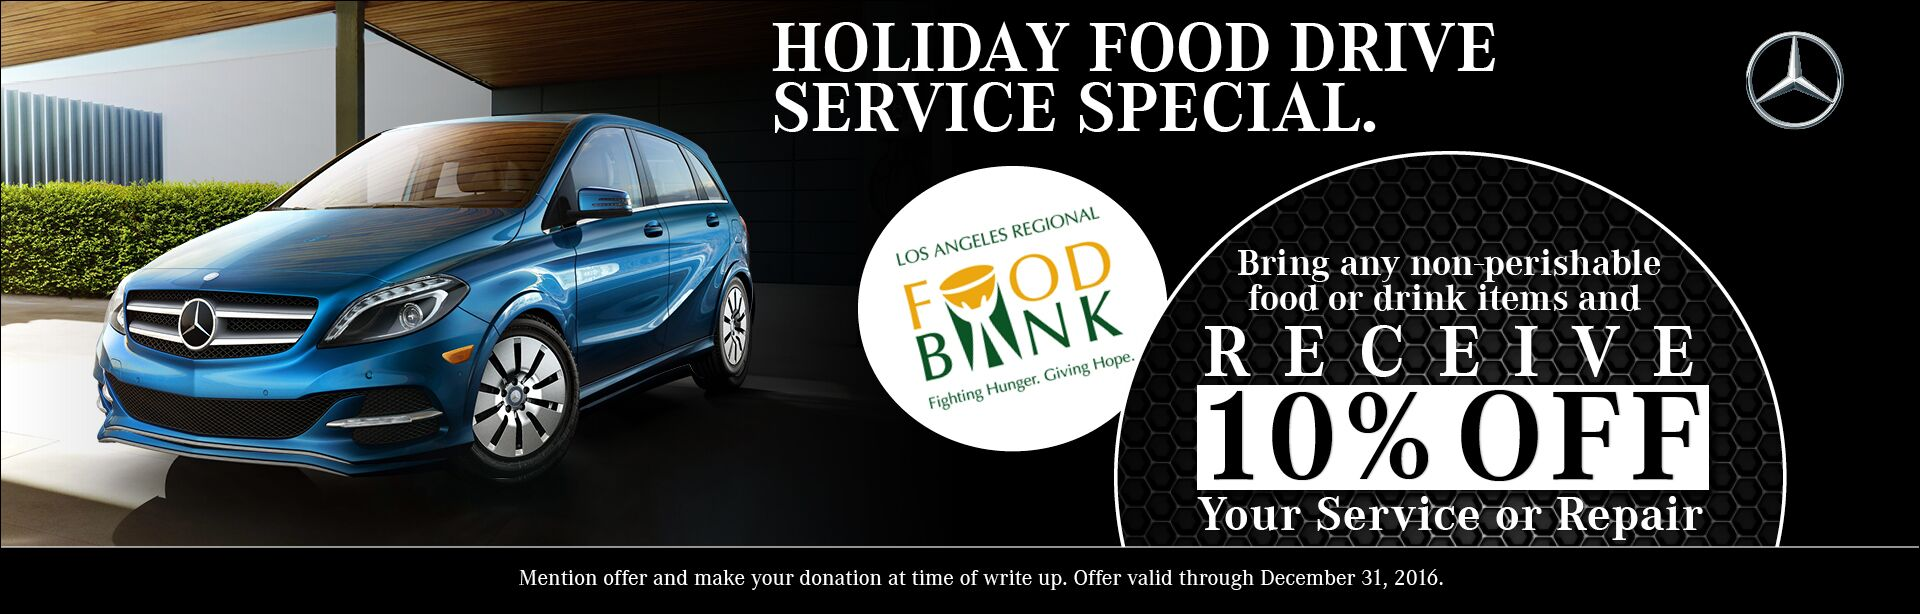 Food Drive Service Special